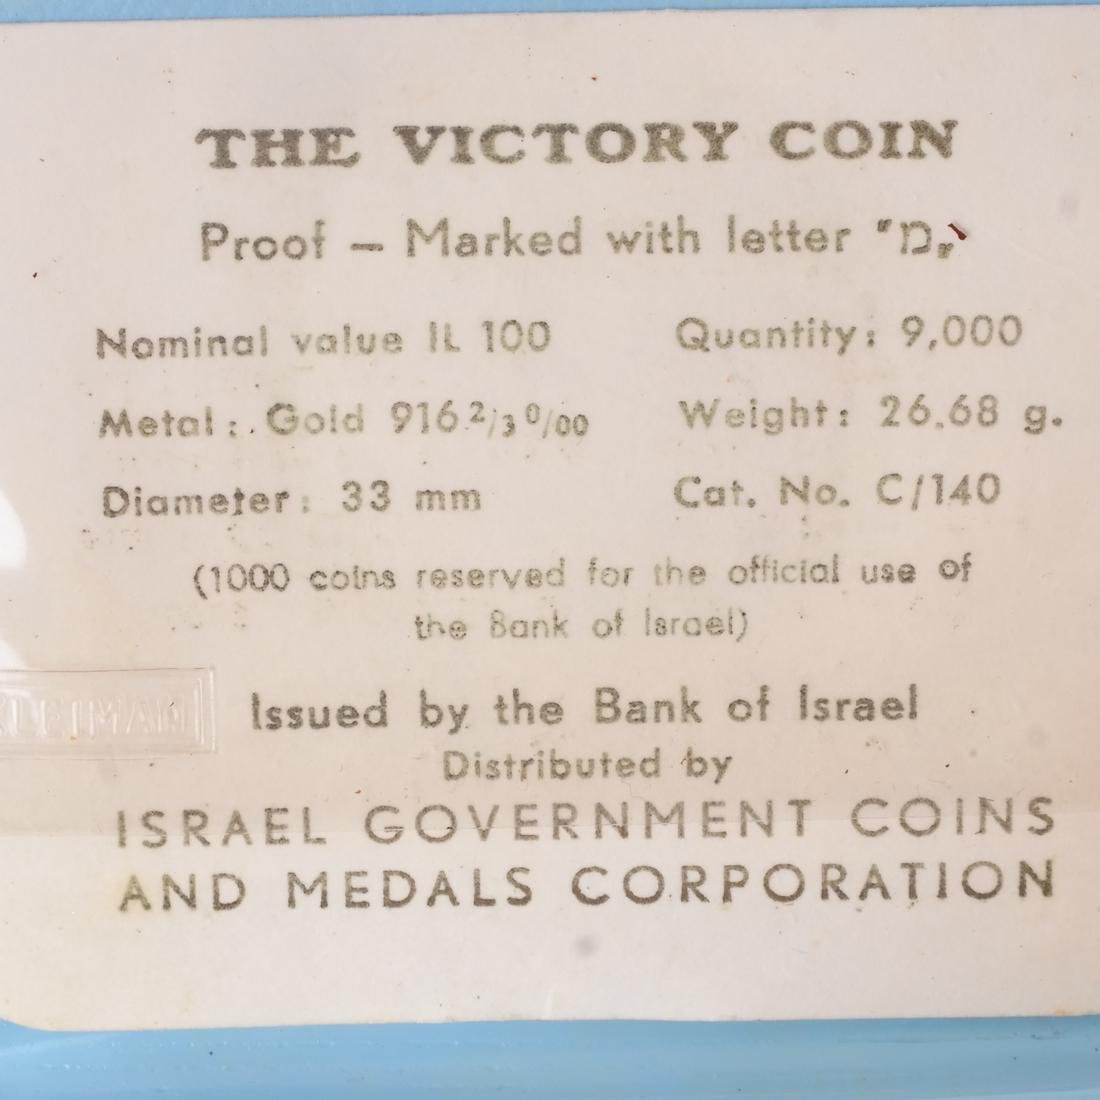 1967 Israel Gold, The Victory Coin - 2